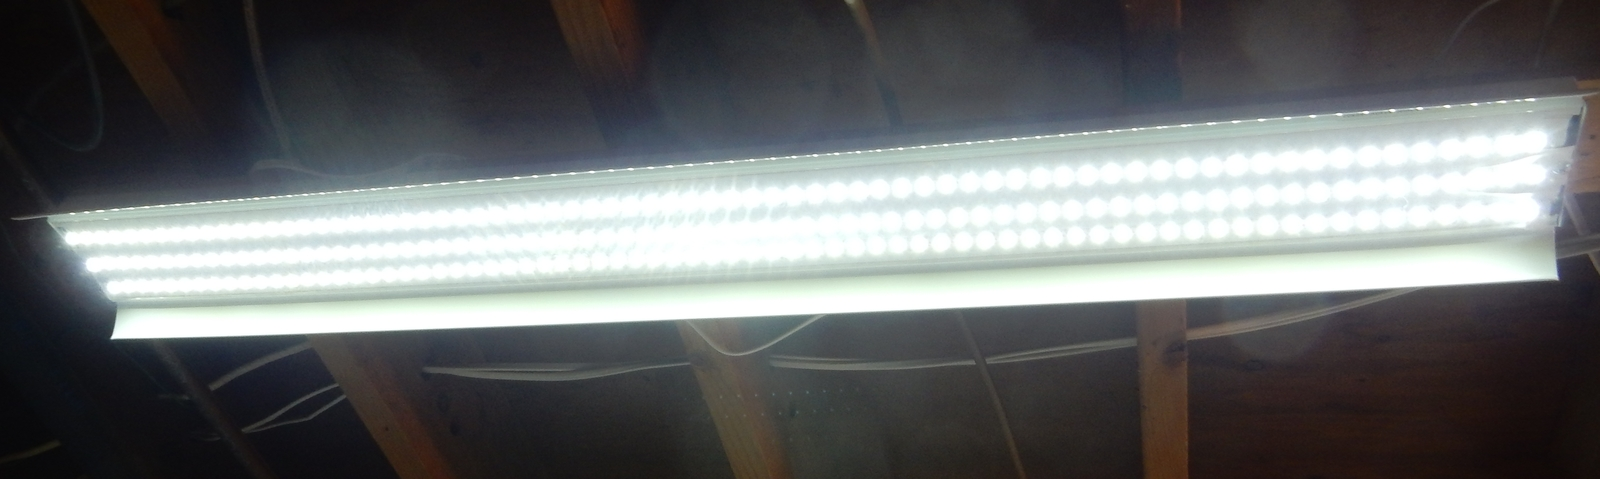 Kit: 60W Power Supply + 2x 4' LED Strips, Bright White, Hi-lumen